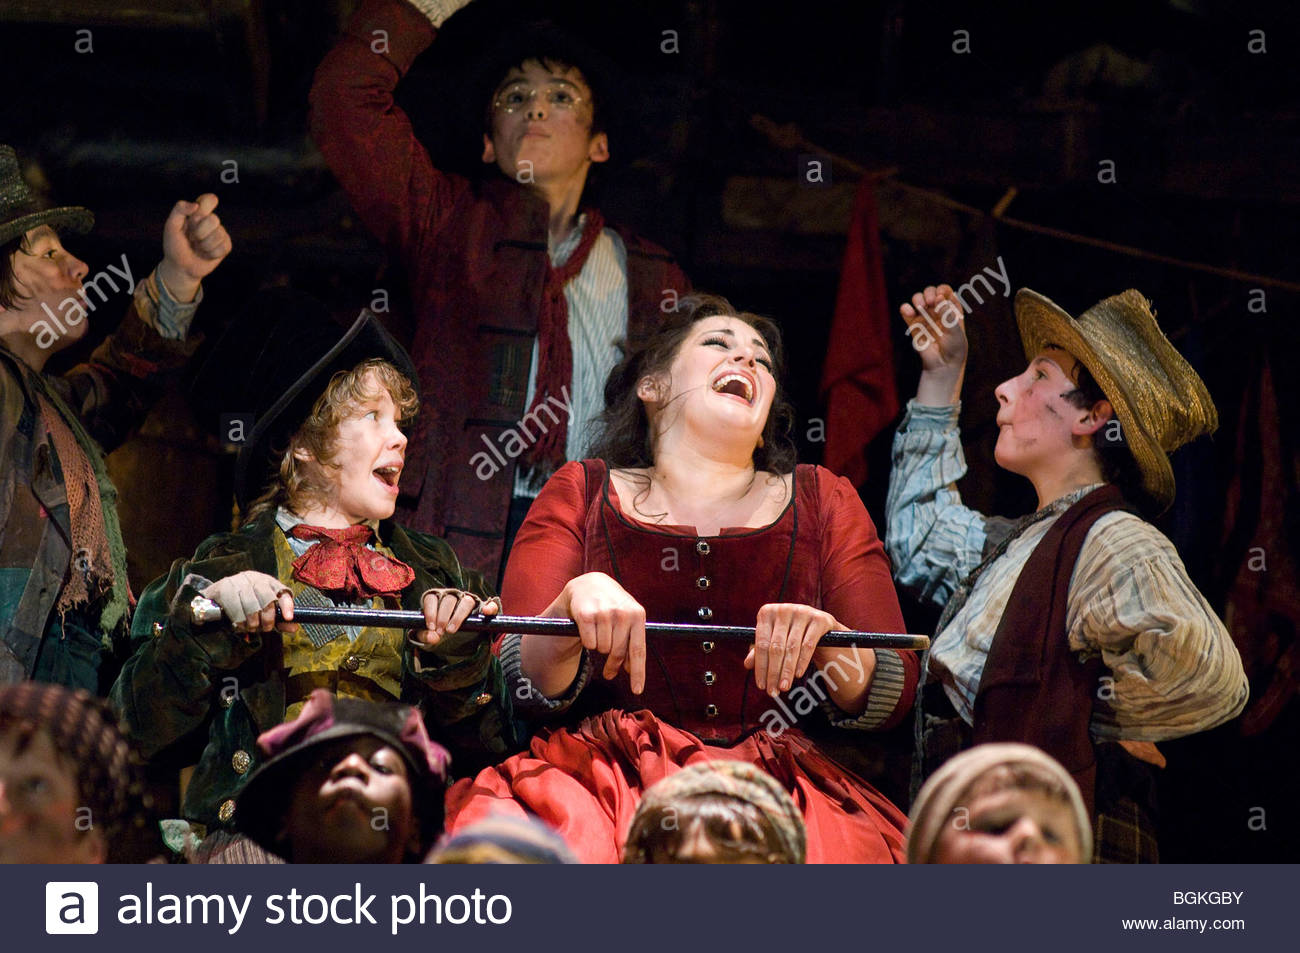 Oliver by Lionel Bart,directed by Rupert Goold,Choreographed by Matthew Bourne - Stock Image